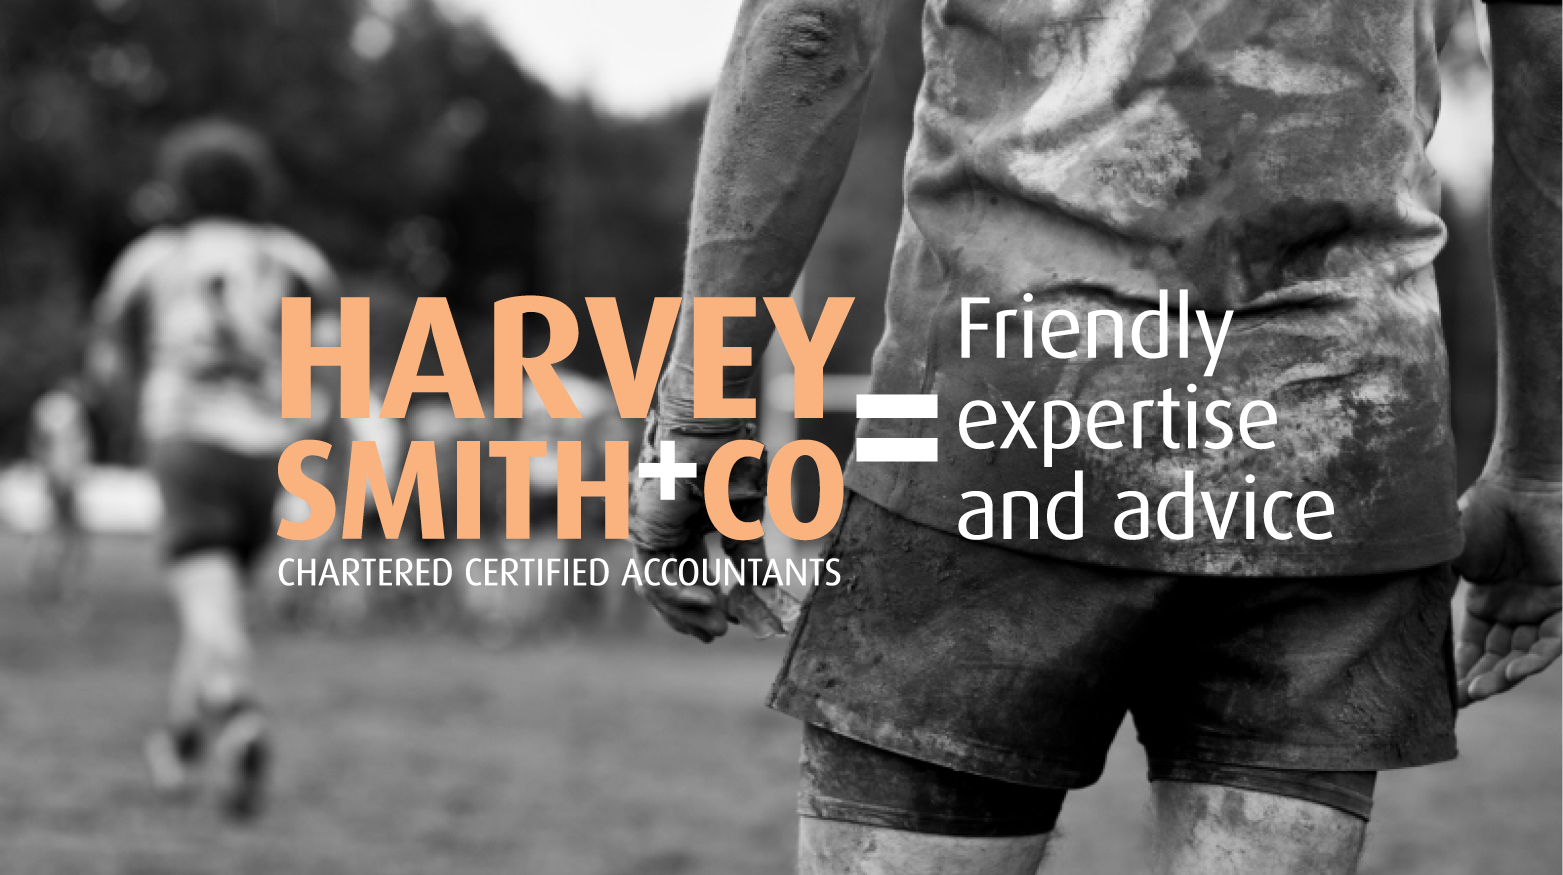 Image link for Harvey Smith & Co brand design